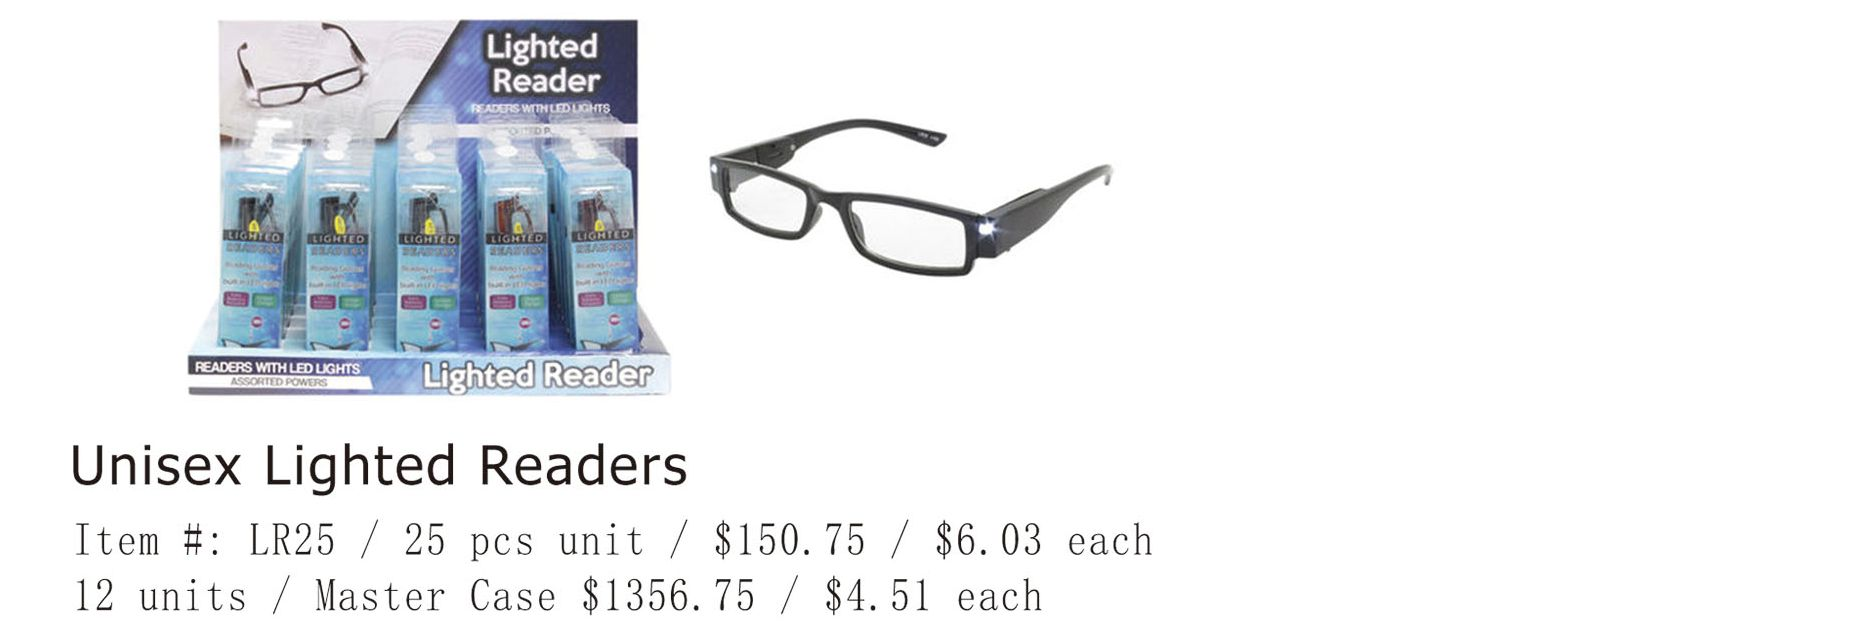 Unisex Lighted Readers - 25 Pieces Unit